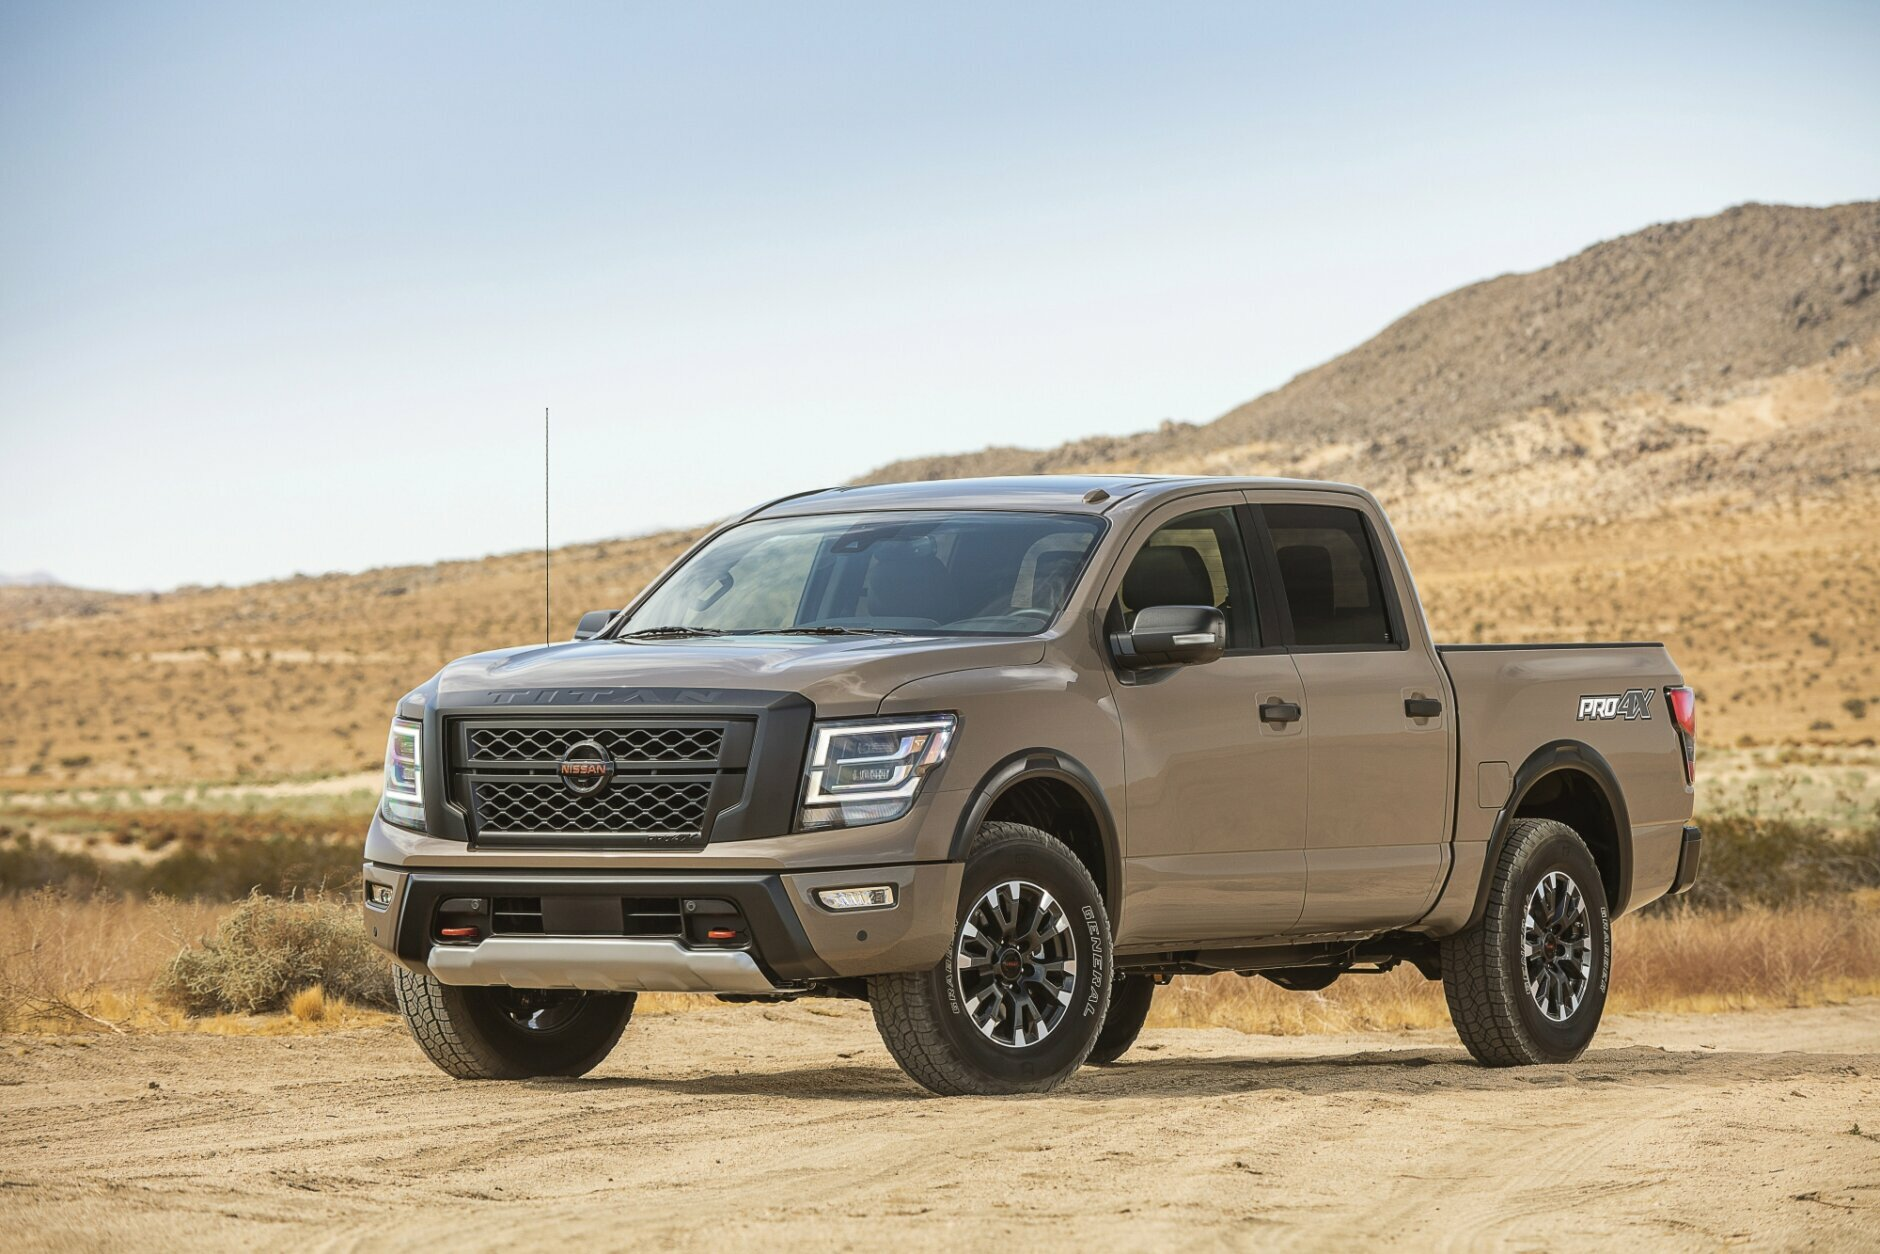 <p>Nissan is offering a Labor Day deal on its 2020 Nissan Titan: 0% financing for 72 months plus up to $3,000 cash back, according to U.S. News and World Report.</p> <p>The Titan is the only truck to land on U.S. News&#8217; best Labor Day deals ranking.</p>